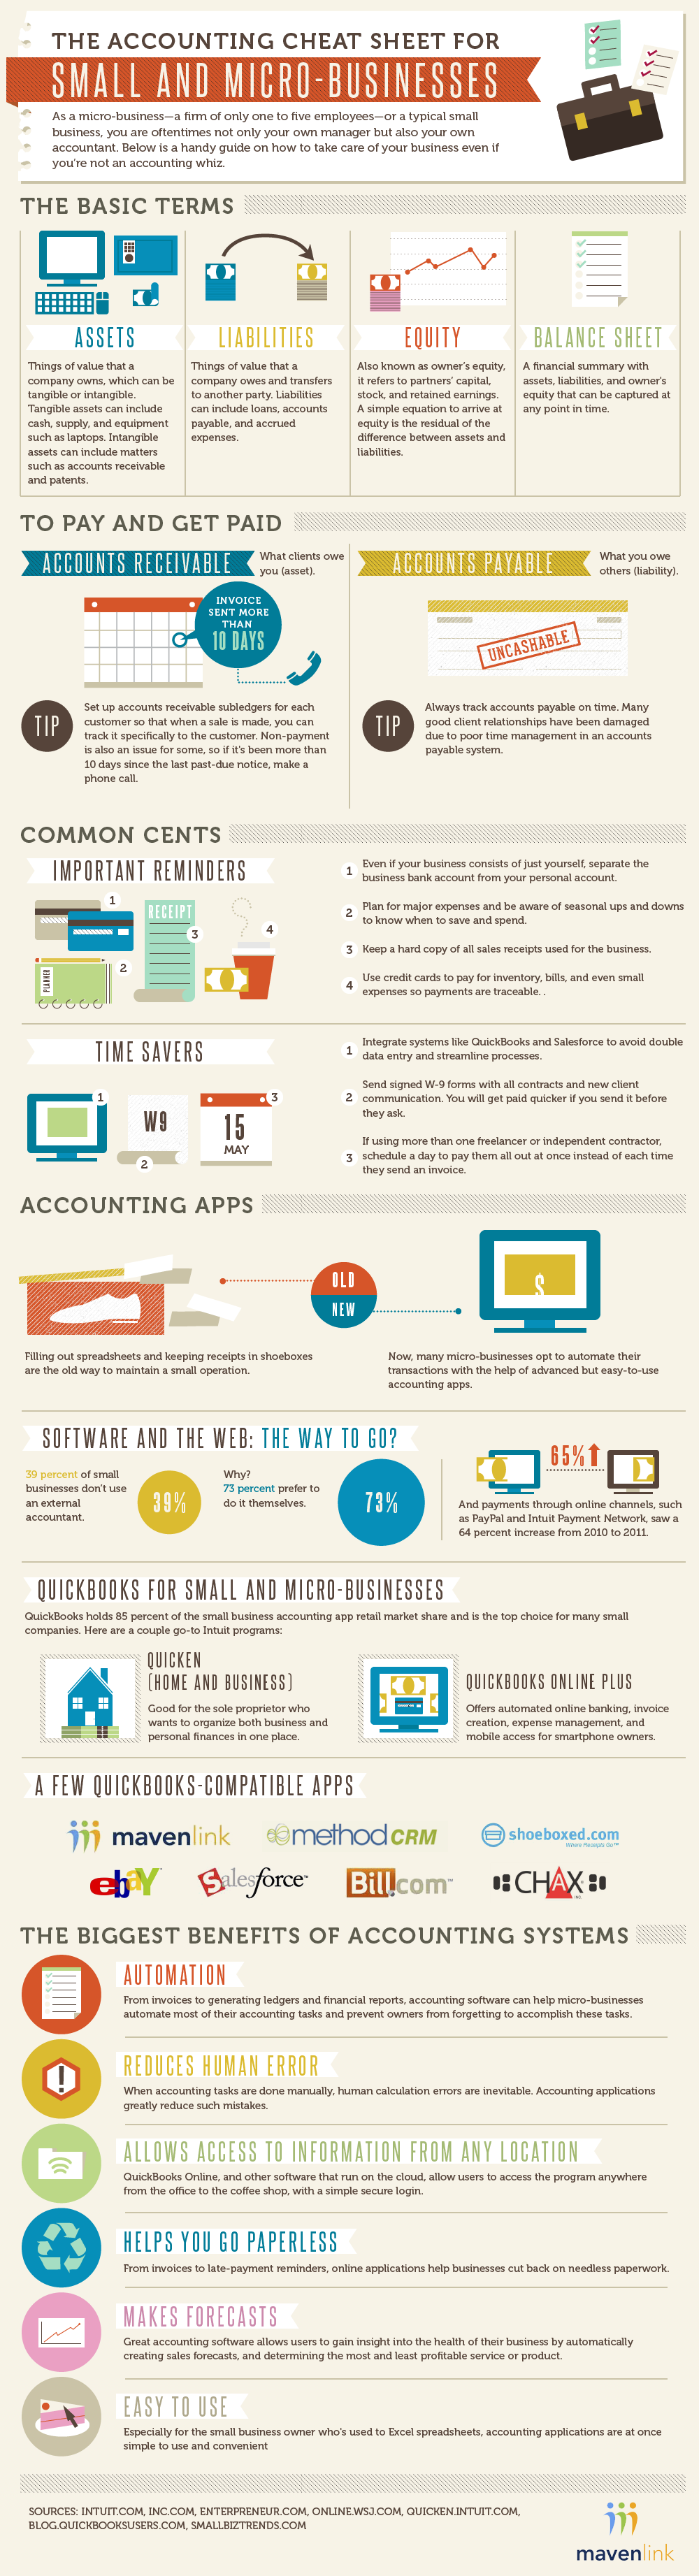 The Accounting Cheat Sheet | Home Business Ideas | Pinterest